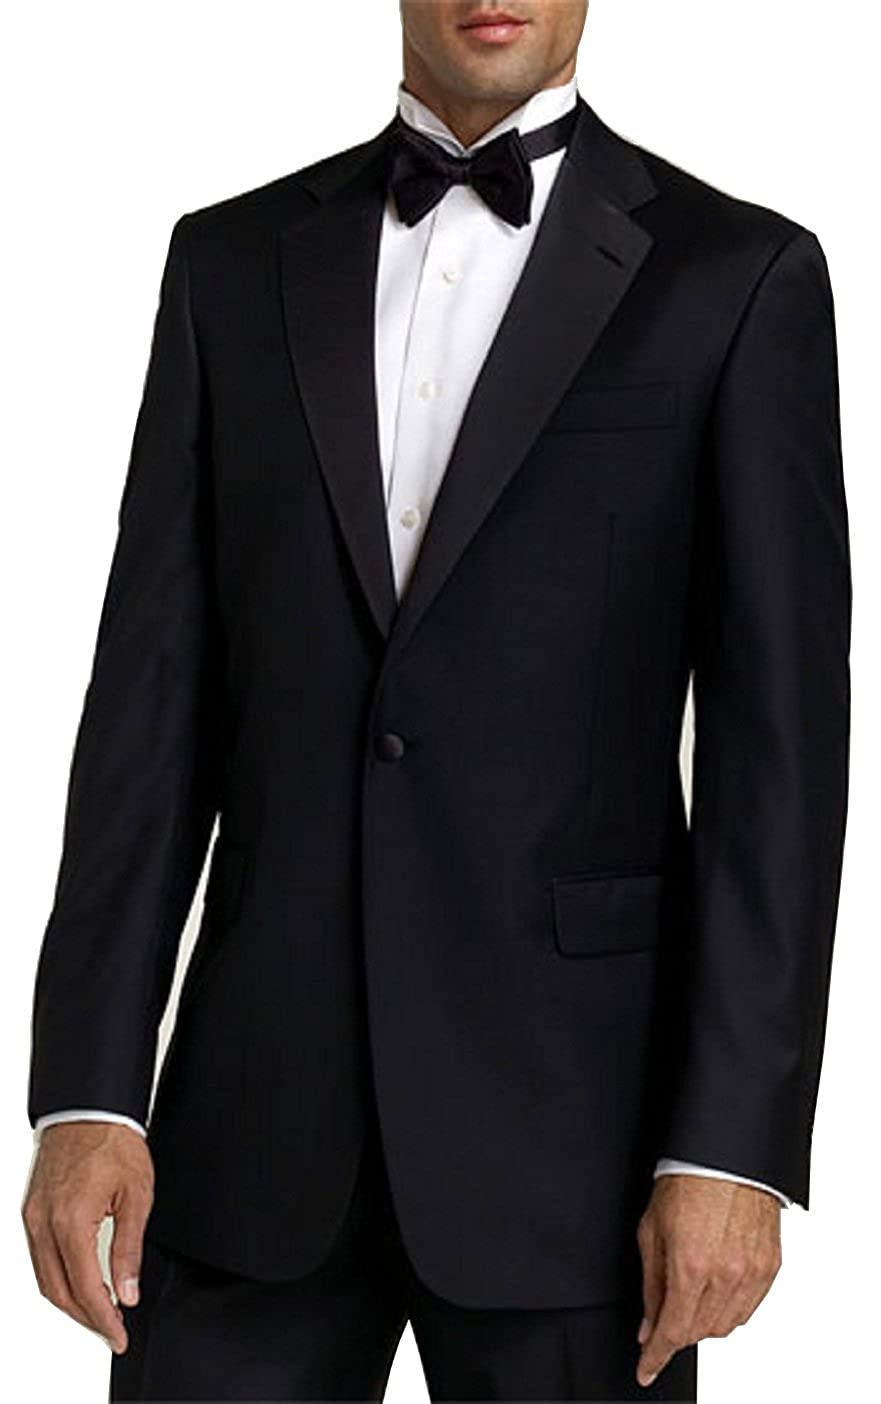 Neil Allyn Tuxedo with Pleated Front, Adjustable Waist Pants 3002-3034